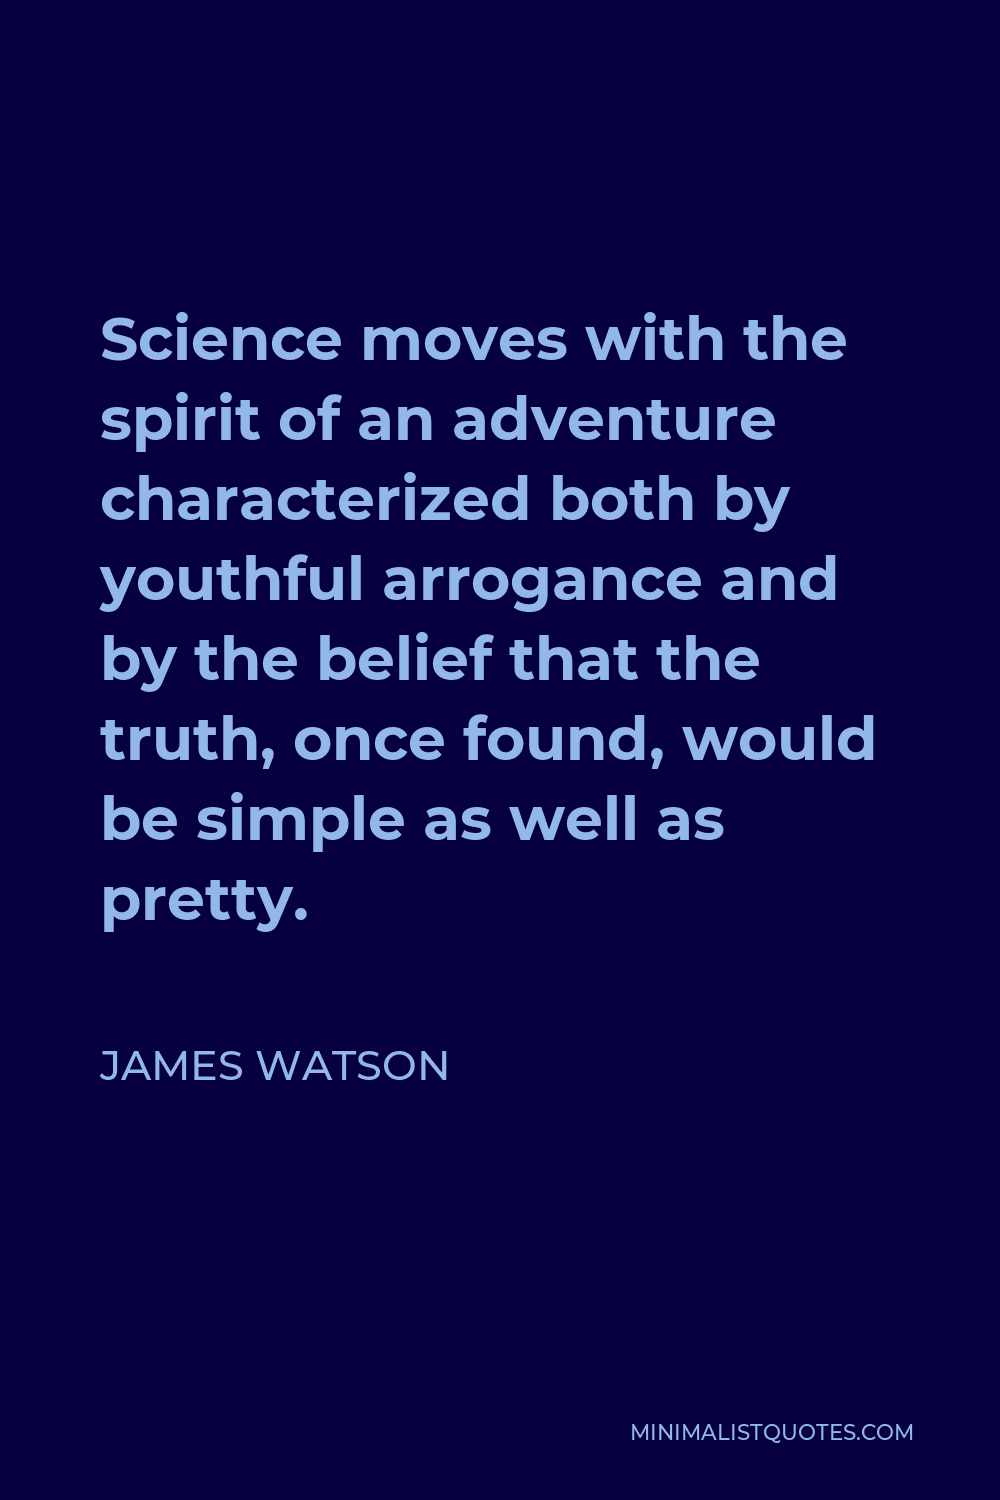 James Watson Quote - Science moves with the spirit of an adventure characterized both by youthful arrogance and by the belief that the truth, once found, would be simple as well as pretty.